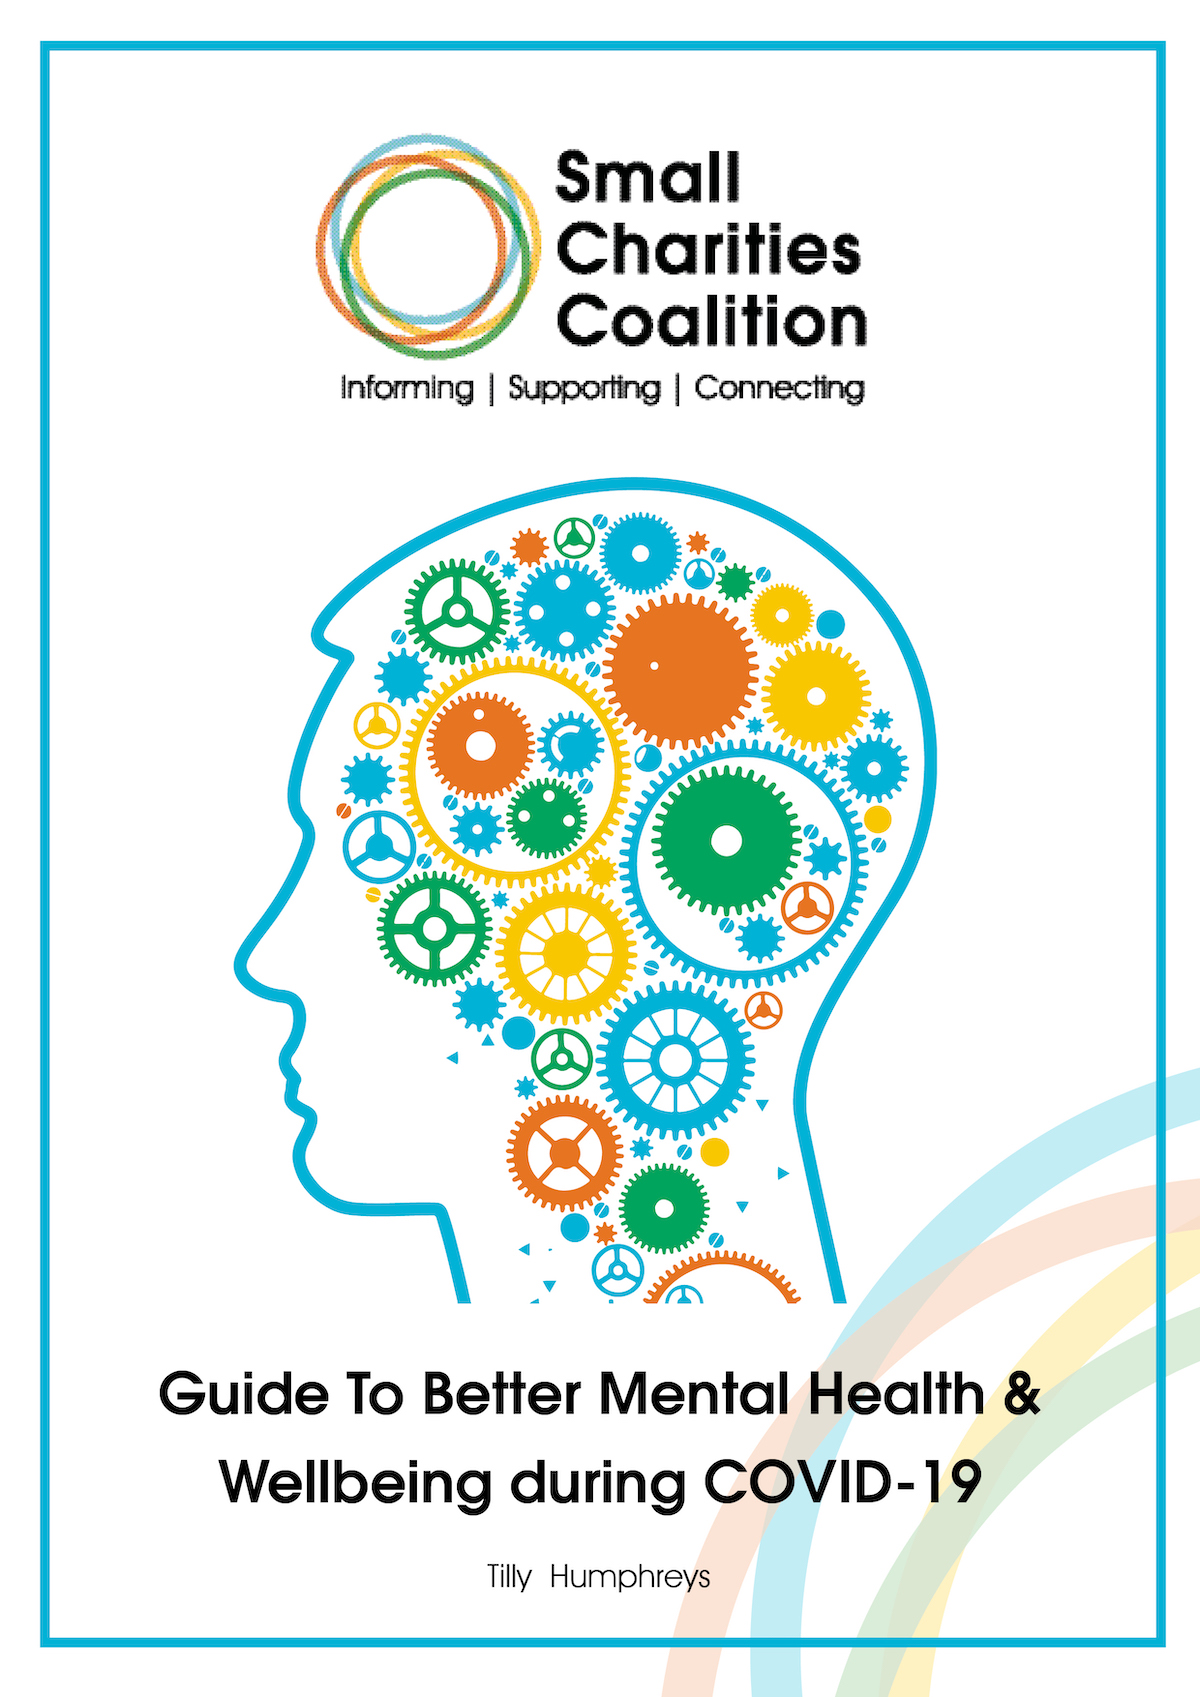 small charities guide cover